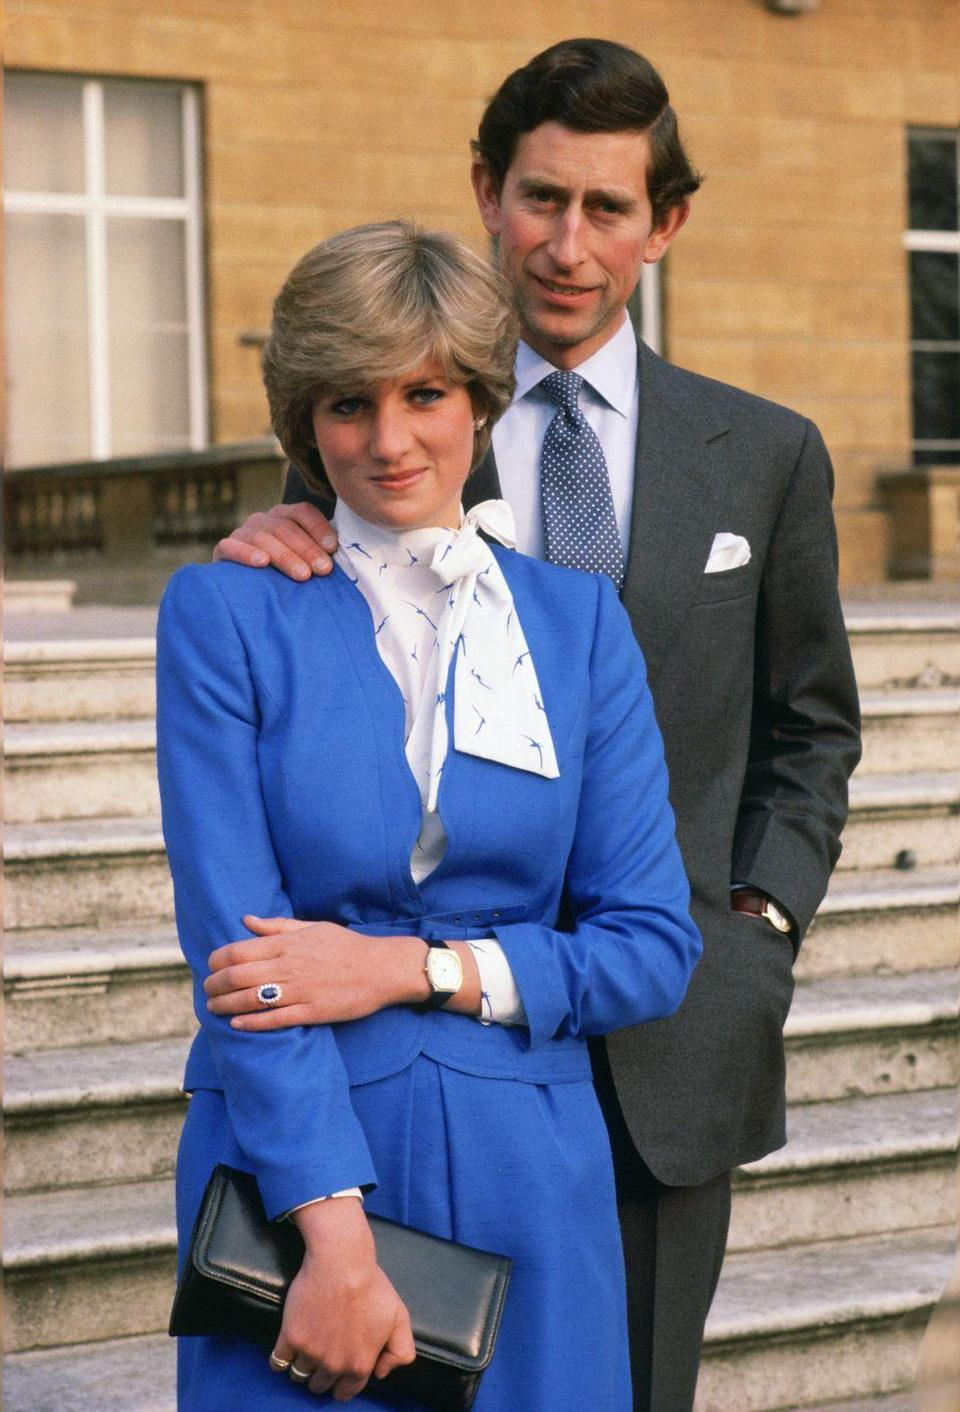 """<p>In 1981, after a whirlwind courtship, Prince Charles presented Diana Spencer with an array of engagement rings by the House of Garrard. The 19-year-old royal bride-to-be took to<a href=""""https://www.townandcountrymag.com/style/jewelry-and-watches/a34644816/princess-diana-sapphire-engagement-ring-history/"""" rel=""""nofollow noopener"""" target=""""_blank"""" data-ylk=""""slk:a 12-carat Ceylon sapphire ring surrounded by 14 diamonds"""" class=""""link rapid-noclick-resp""""> a 12-carat Ceylon sapphire ring surrounded by 14 diamonds</a>. Her """"off the rack"""" choice may have appalled certain members of the Firm but Princess Diana loved her ring so much she continued to wear it after her divorce. </p>"""